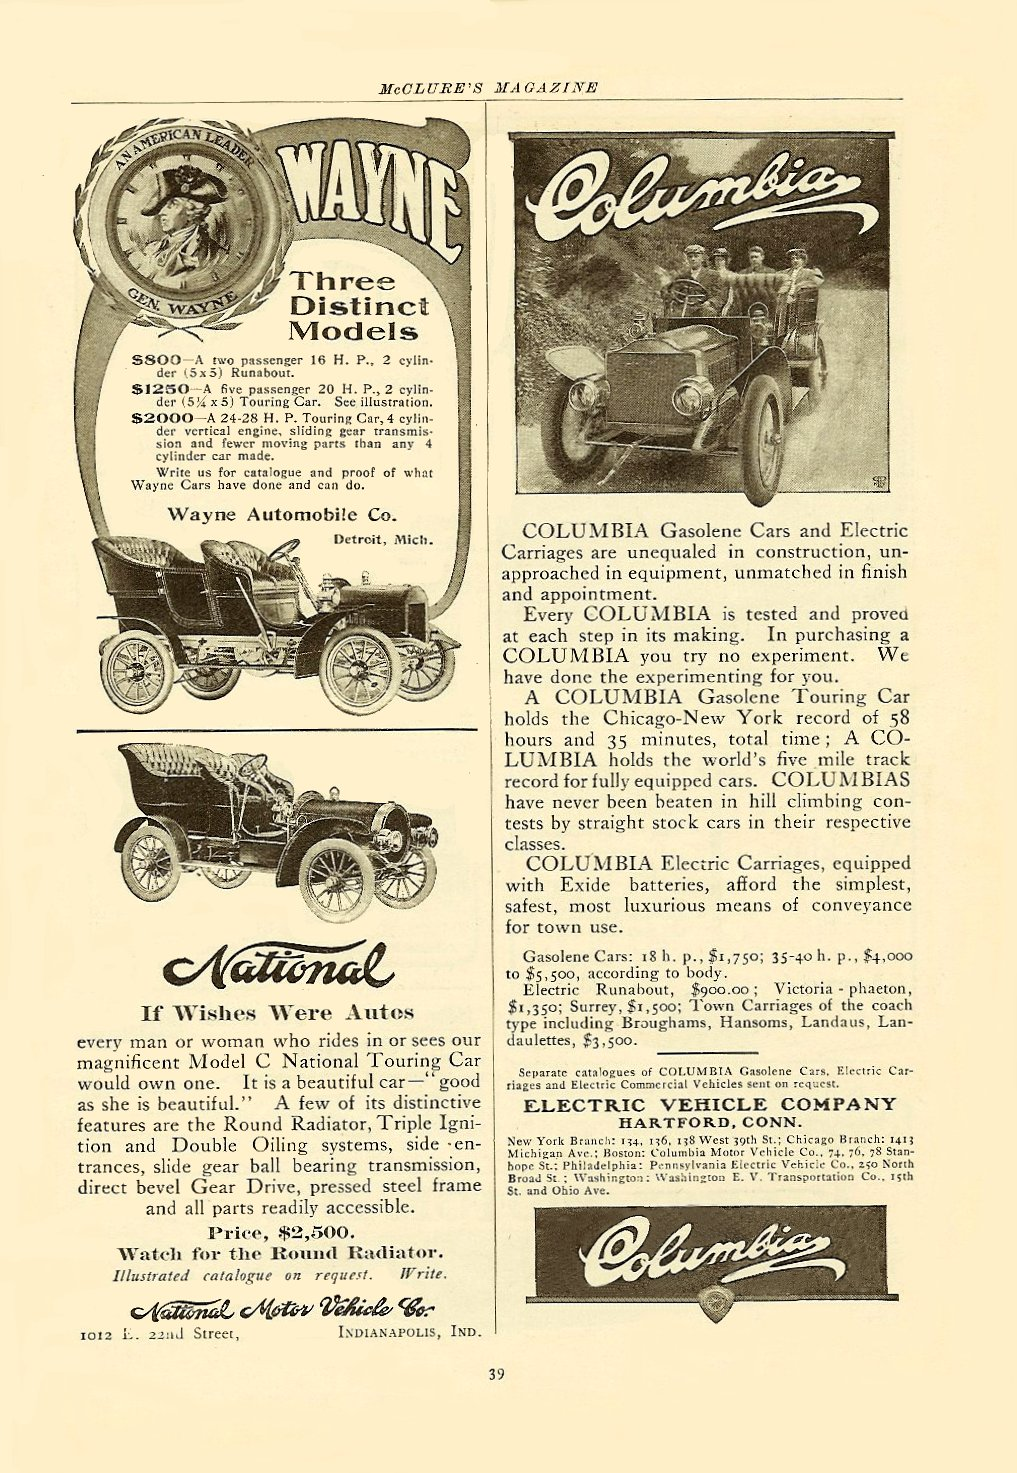 "1905 National ""National If Wishes Were Autos"" $2,500 in 1905 = $51,309 in 2005 McCLURE'S MAGAZINE 6″x9.75″ page 39"